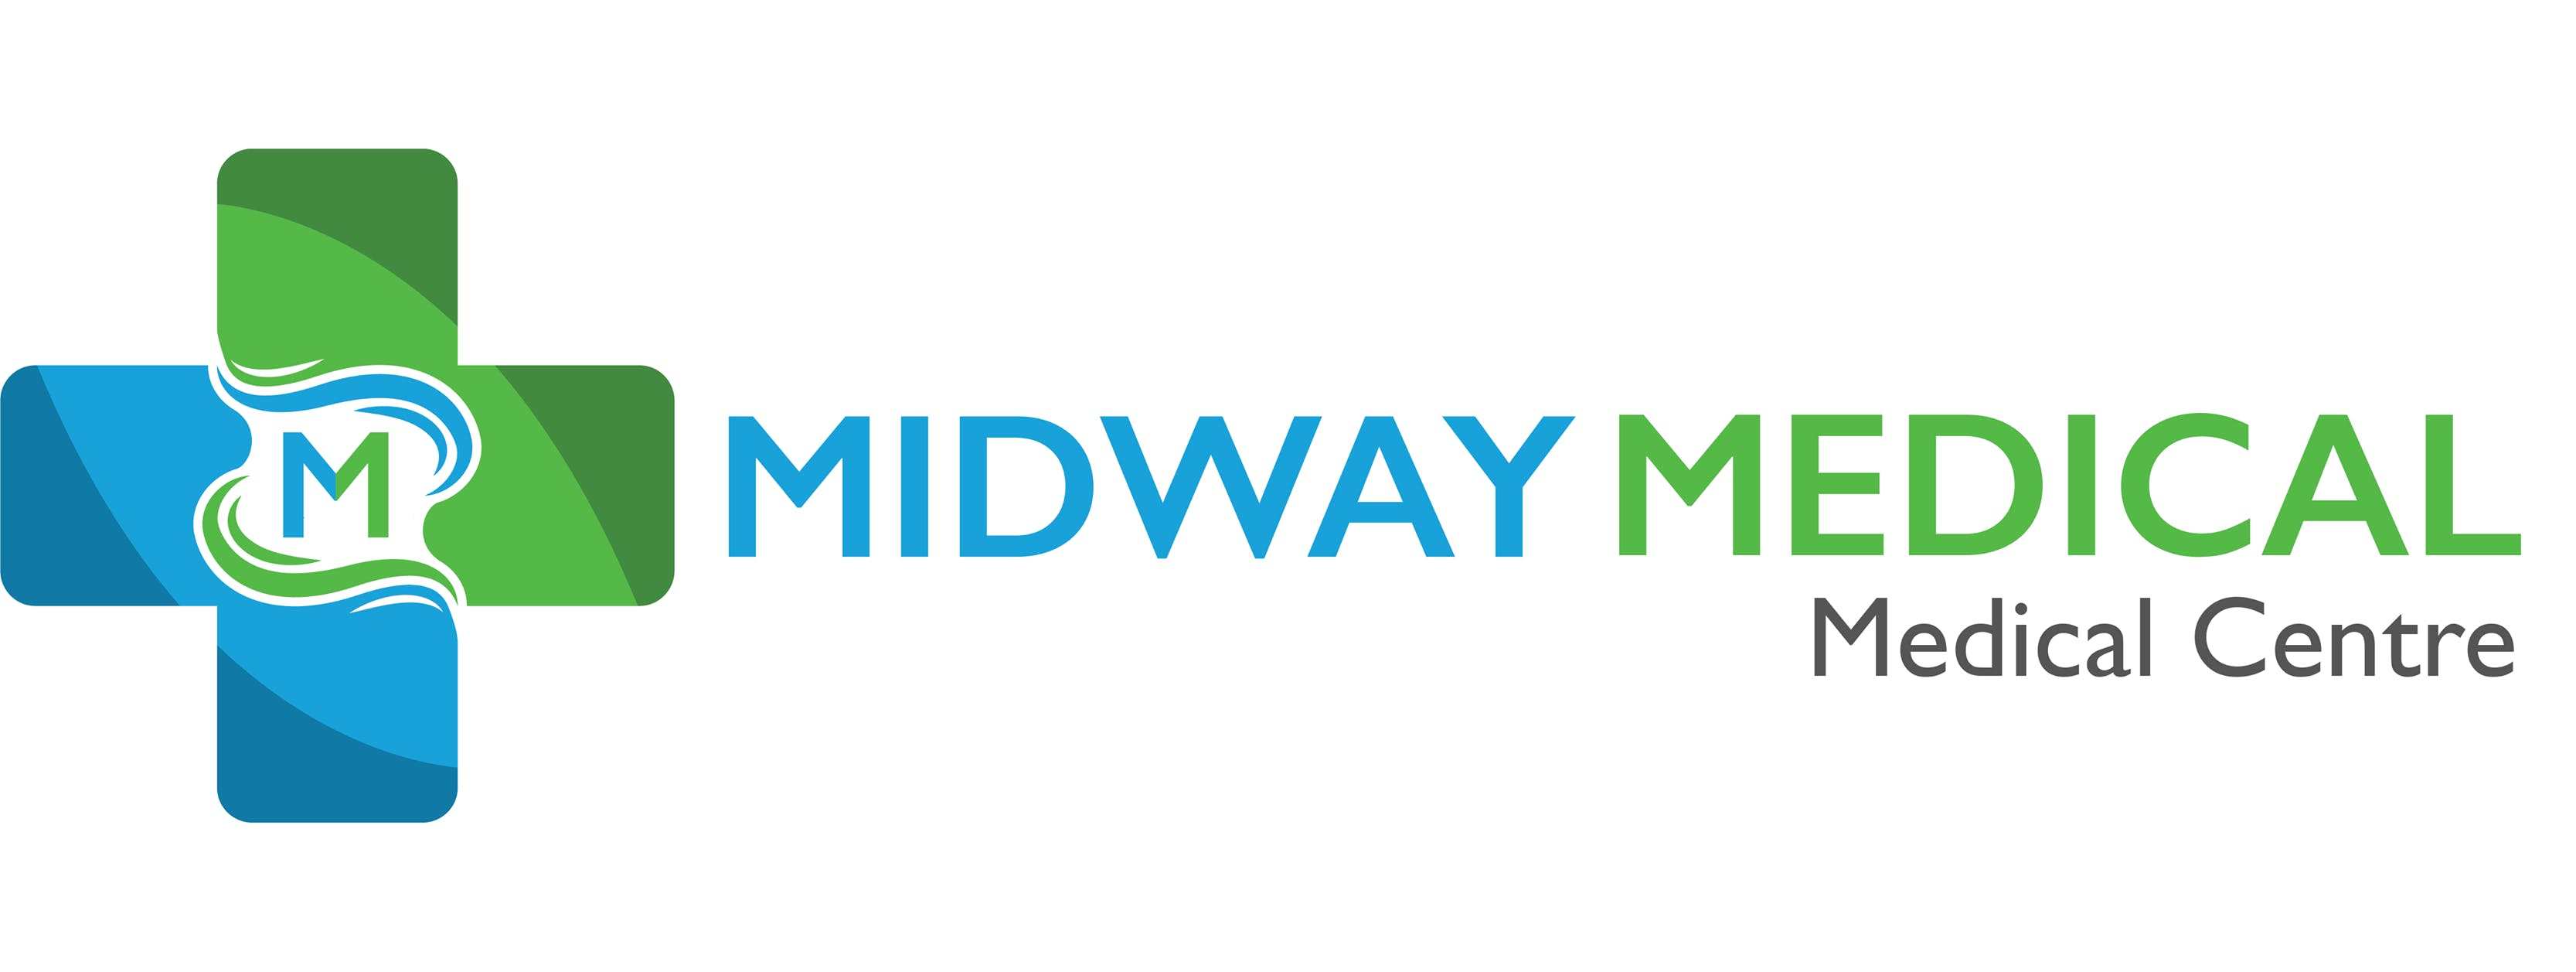 Midway Medical Centre Logo